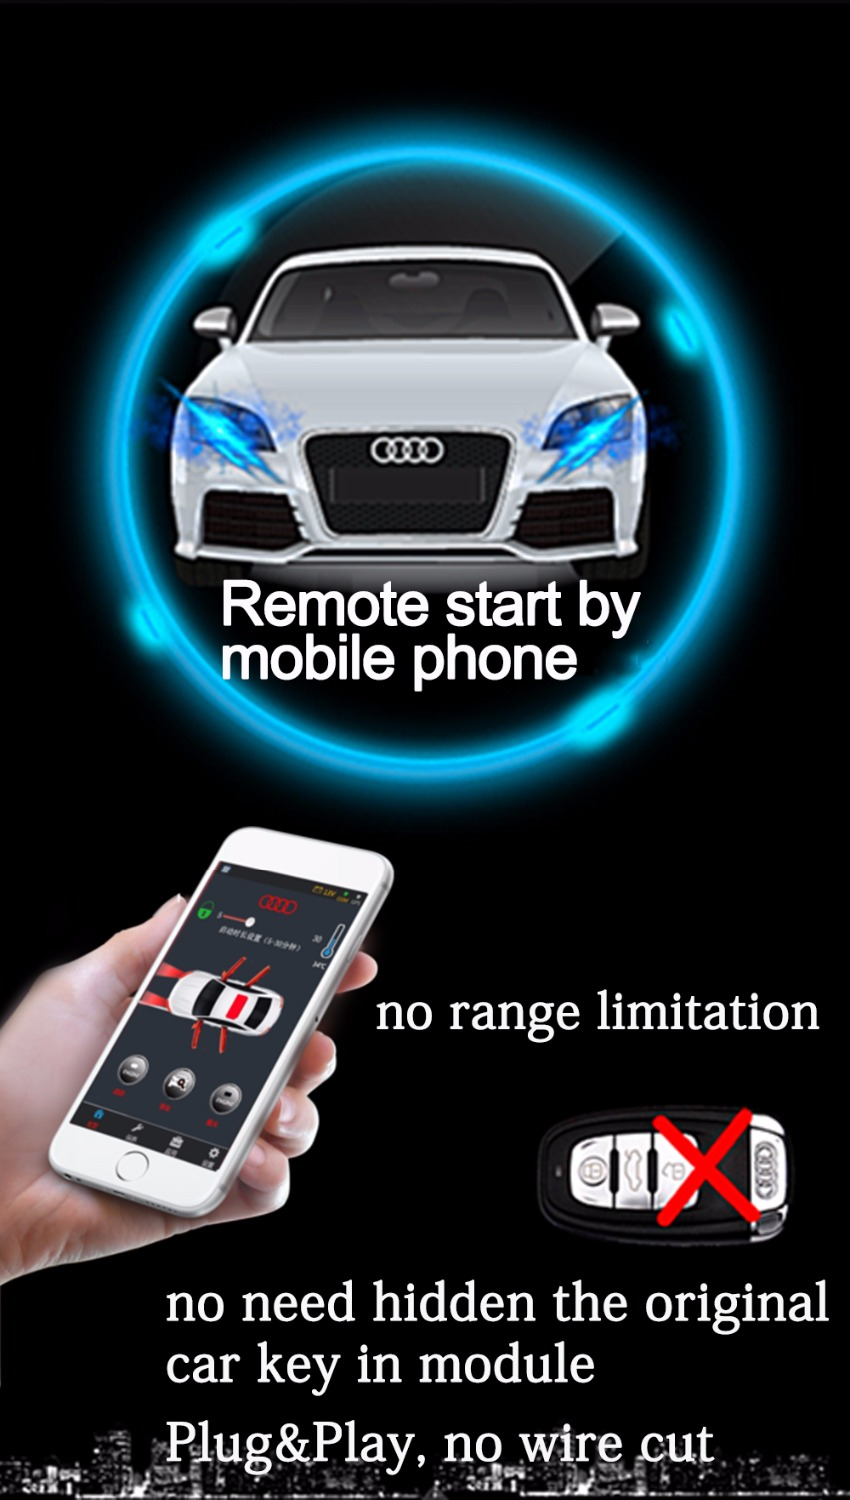 US $340 0 |Immobilizer Bypass Module for Audi A4L/allroad quattro Remote  Start the Engine Keyless Go GPS Tracker Work with Mobile Phone-in Burglar